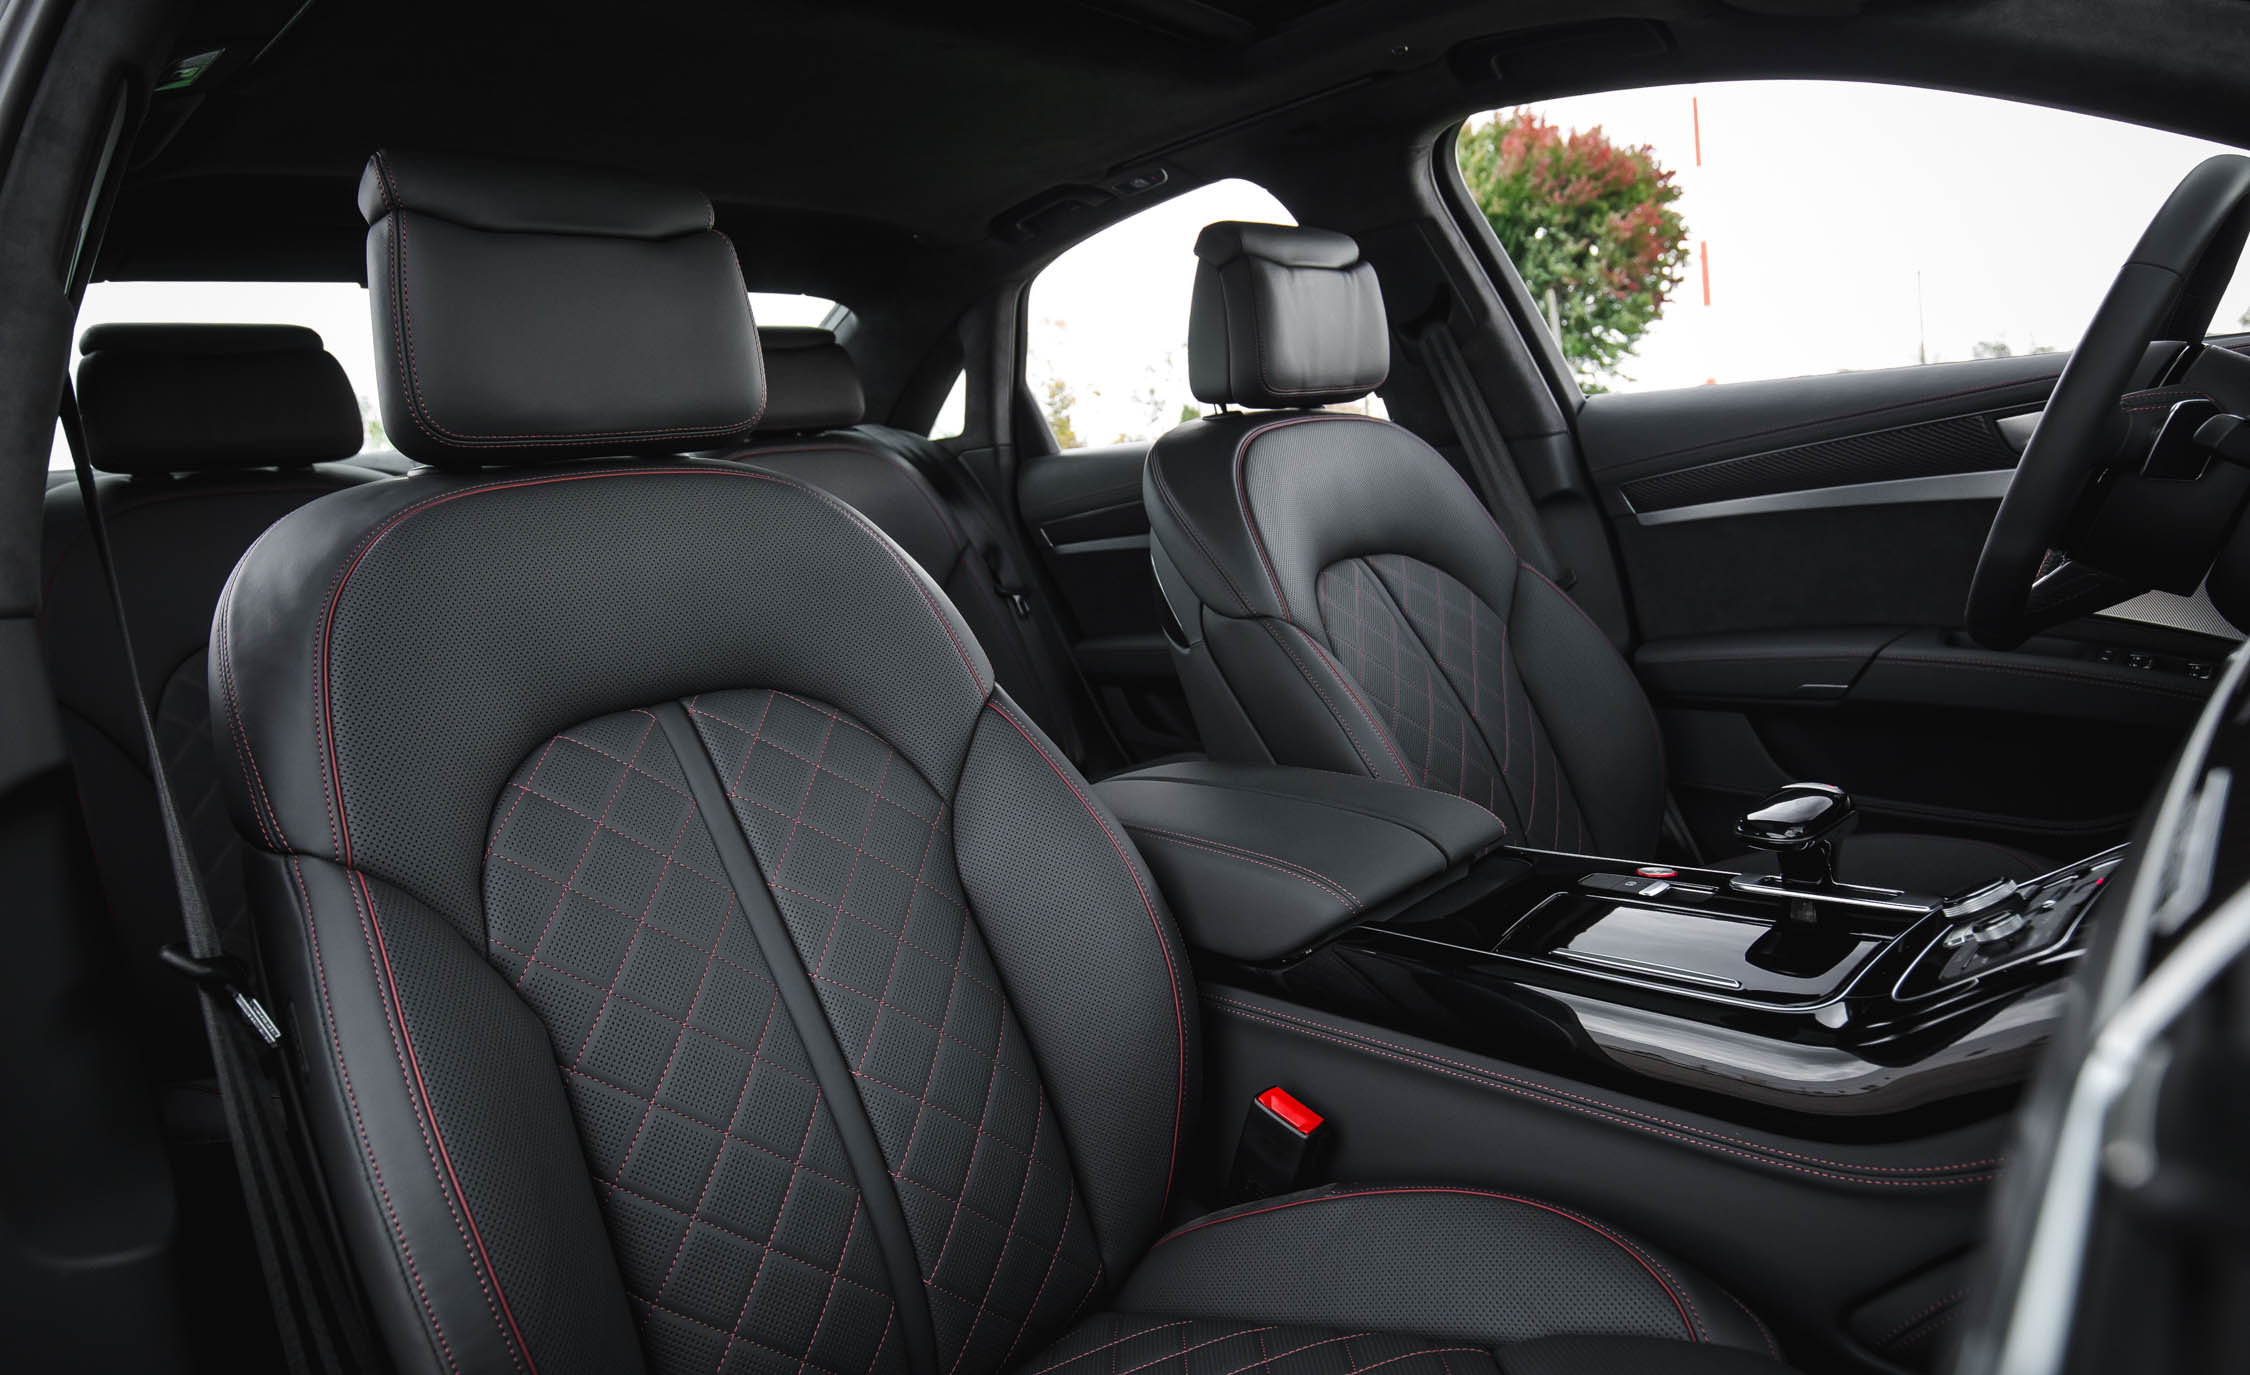 2017 Audi S8 Plus Interior Seats Front Passenger (Photo 18 of 36)